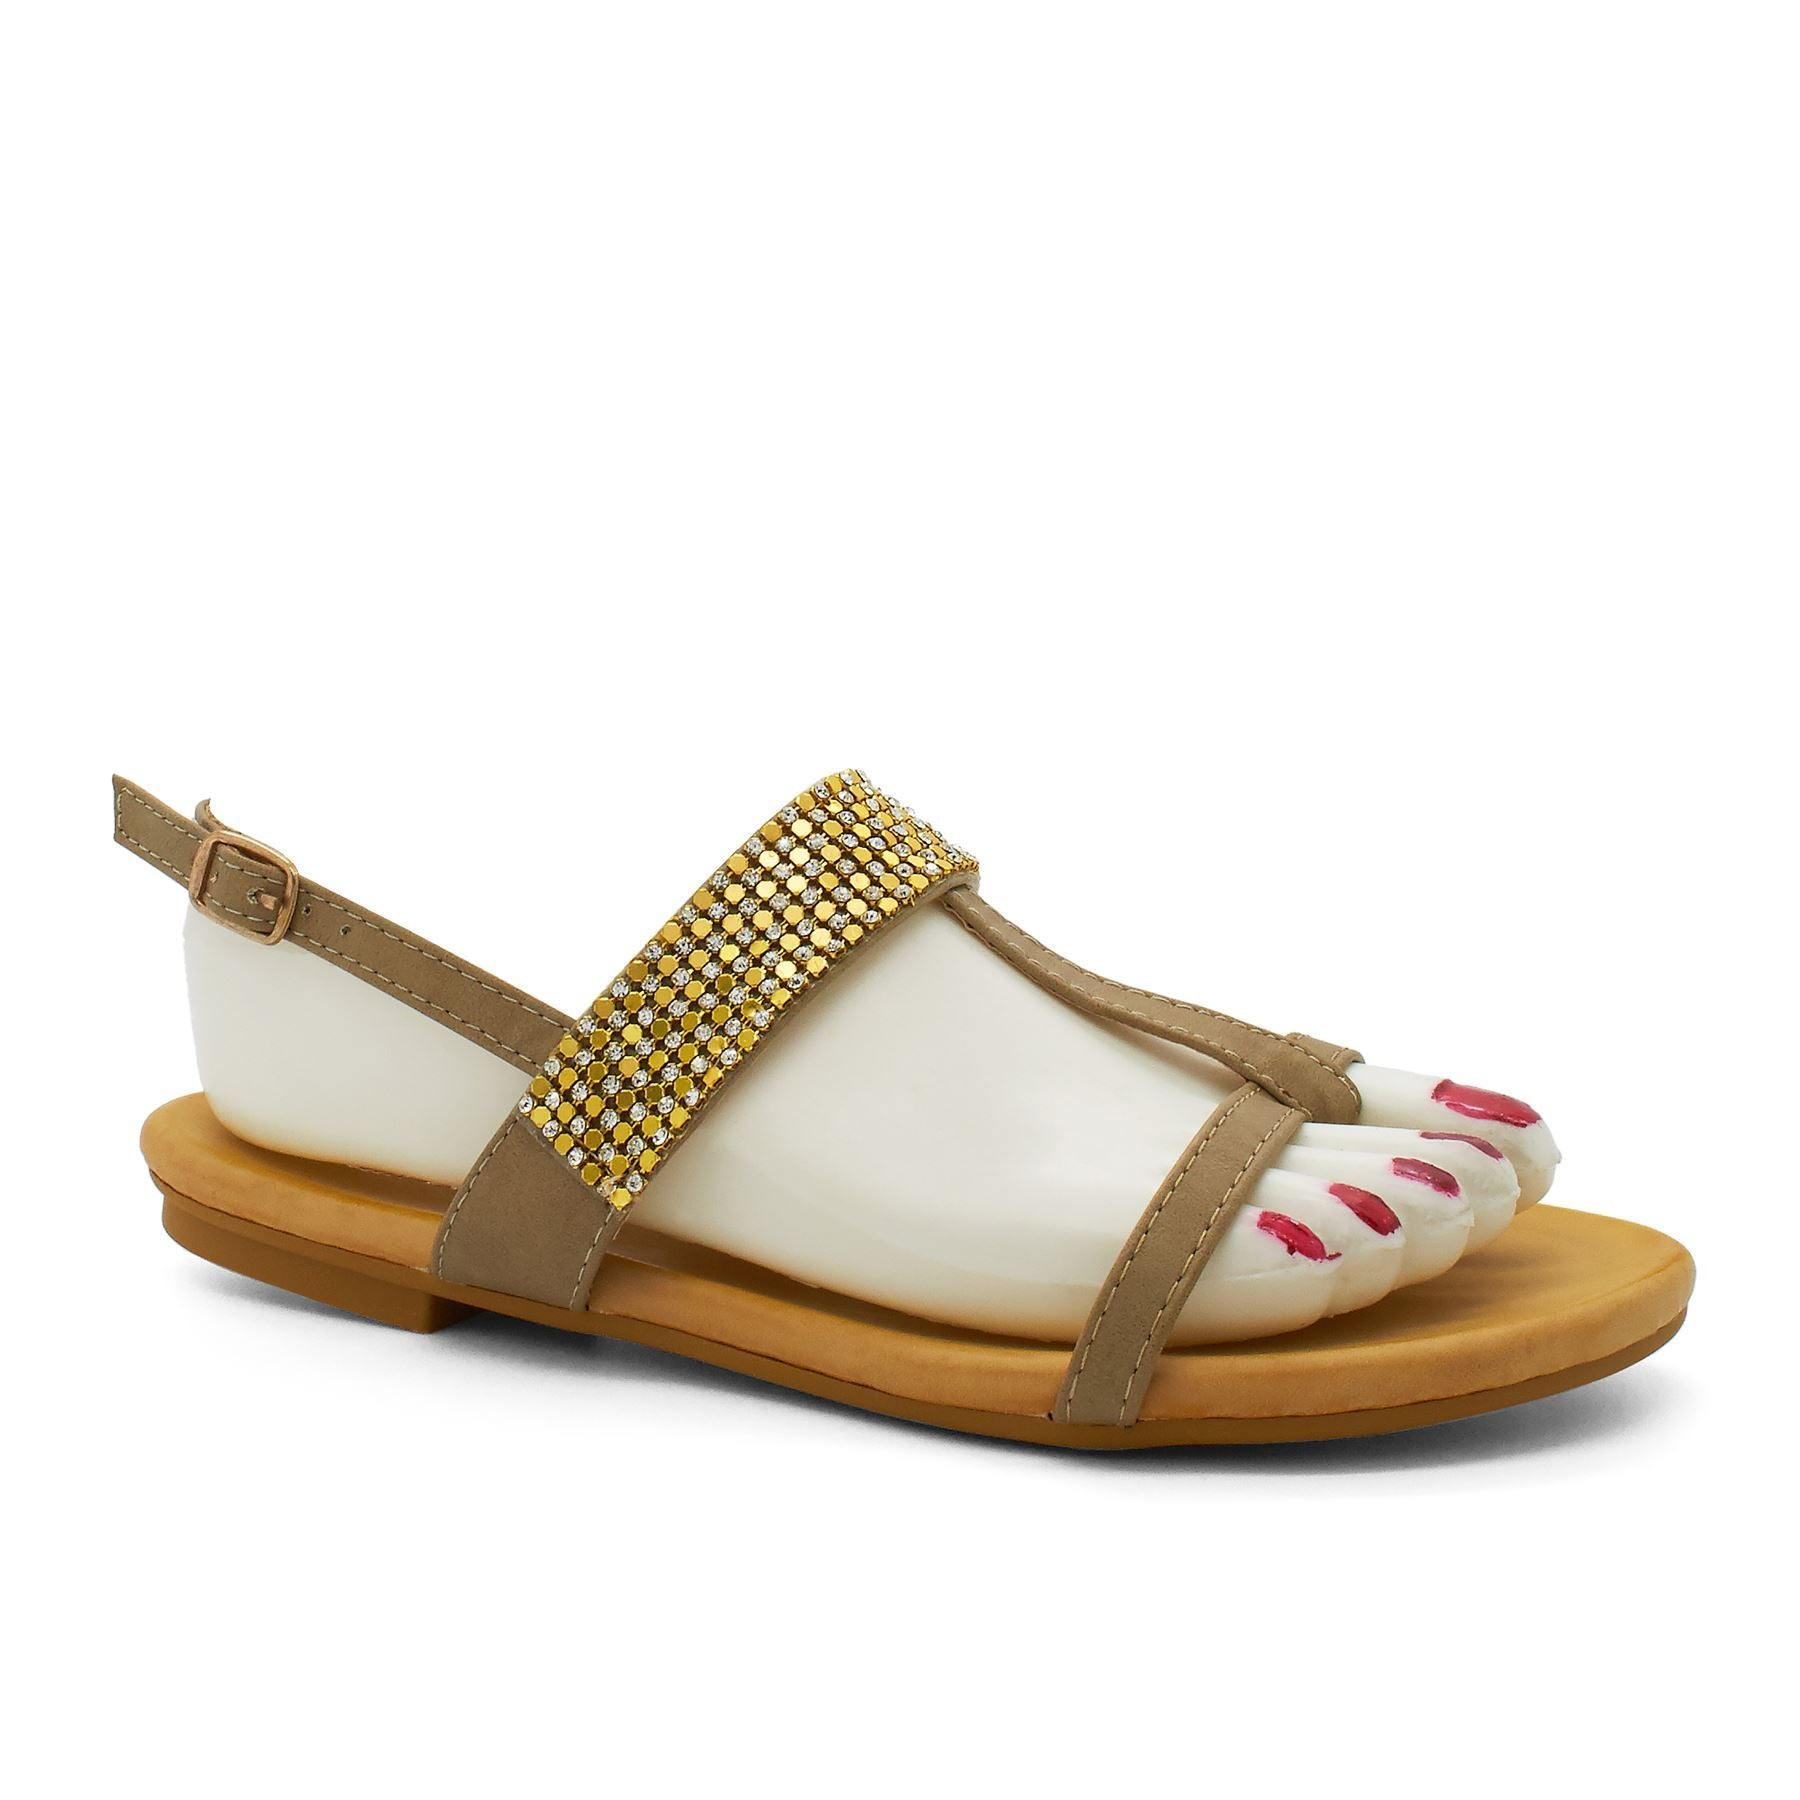 Khaki Embellished T-Bar Flat Sandals